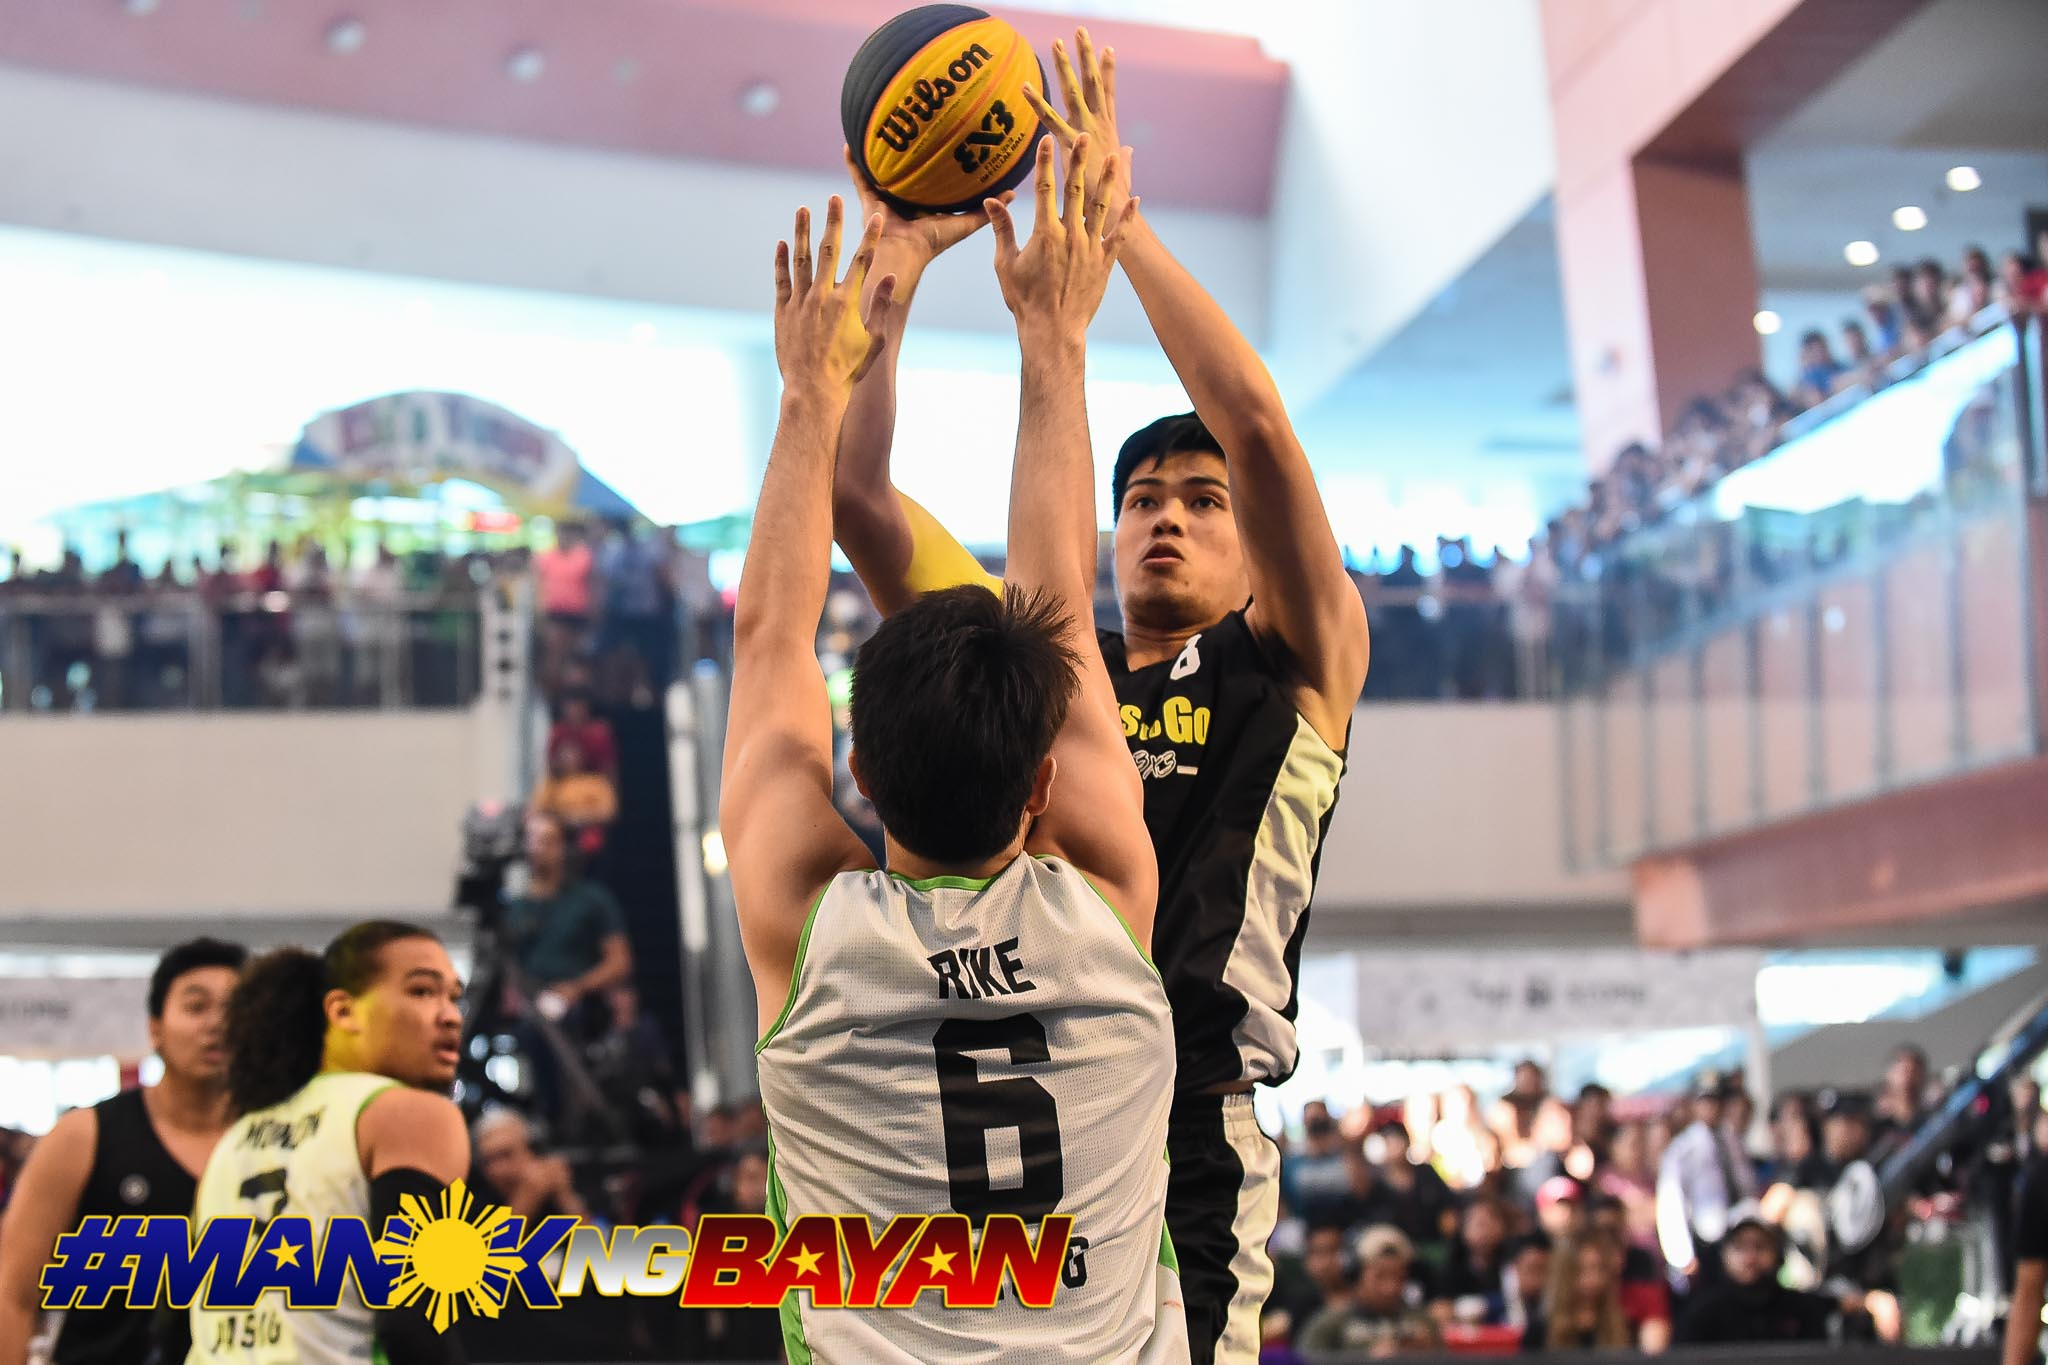 Tiebreaker Times Santi Santillan returns to Wilkins-Balanga as Chooks 3x3 reaches penultimate leg 3x3 Basketball Chooks-to-Go Pilipinas 3x3 News  Zamboanga Valientes MLV Wilkins Balanga Pure Tycoon-Quezon City Ballers Thunder Pateros Hunters Santi Santillan Mindoro Tamaraws MiGuard-Vigan Wolves Mark Panerio Marikina Shoemasters Inoza-Gulf Supreme Bulacan Gold's Gym-Pasig Kings Gold's Gym-Muntinlupa Darius Scott Cebu-Max 4 Birada Brandon Hunter Basilan Steel 2019 Chooks-to-Go Pilipinas 3x3 Season 2019 Chooks-to-Go Pilipinas 3x3 Patriots Cup